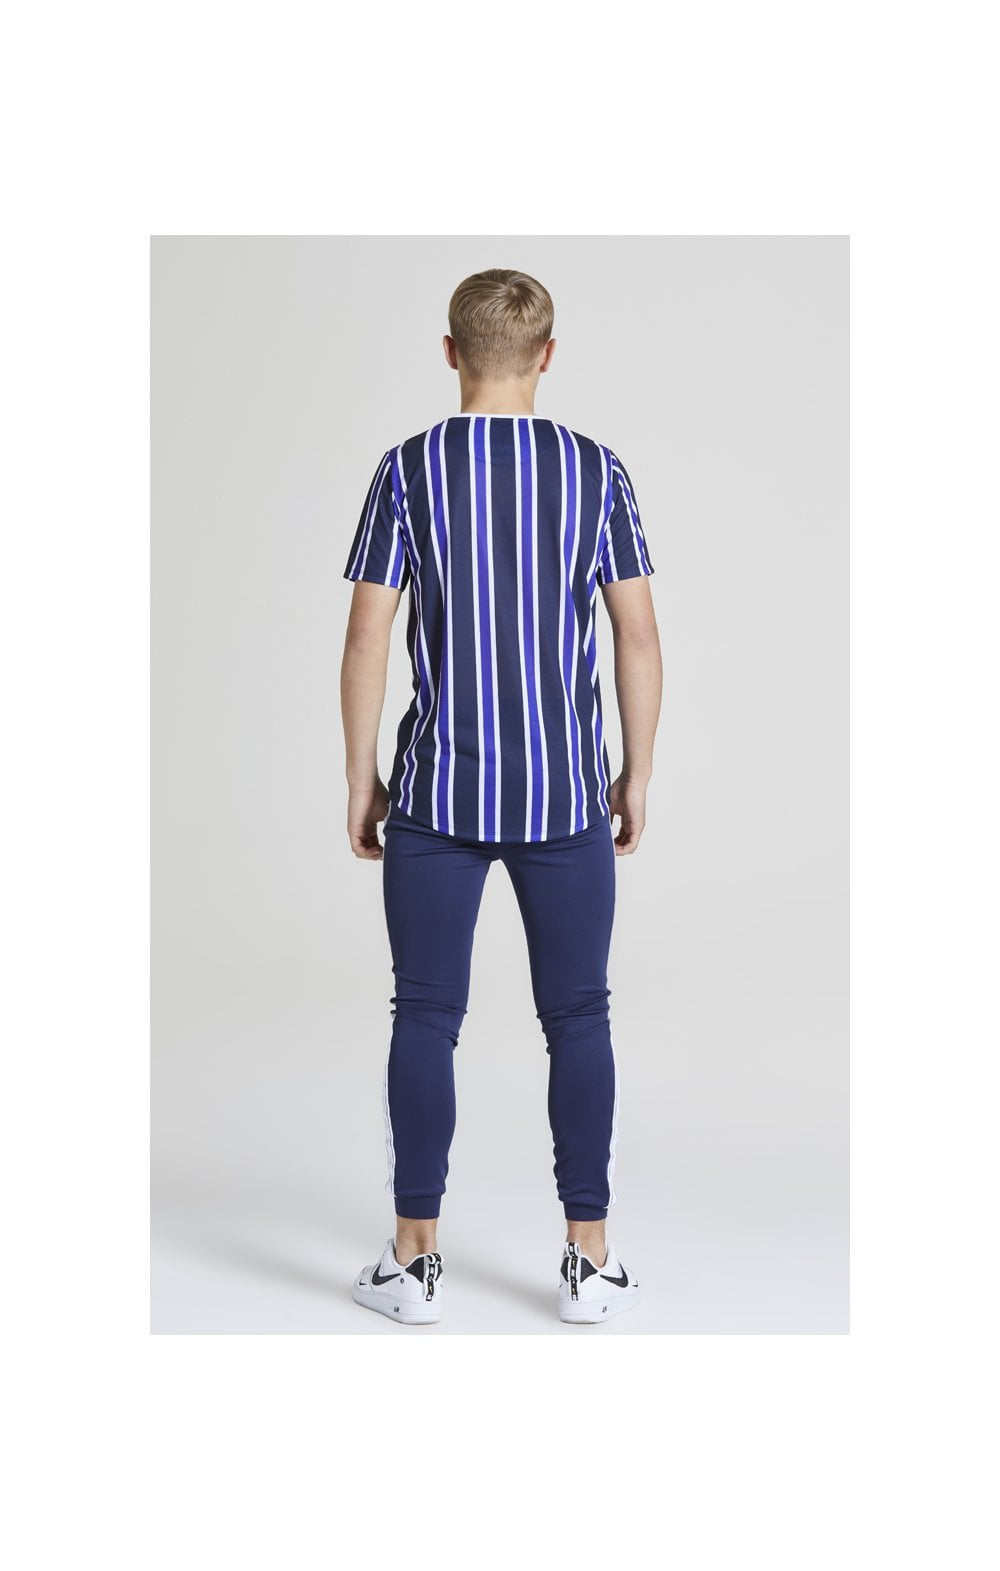 Load image into Gallery viewer, Illusive London Stripe tee - Navy, Purple & White (4)